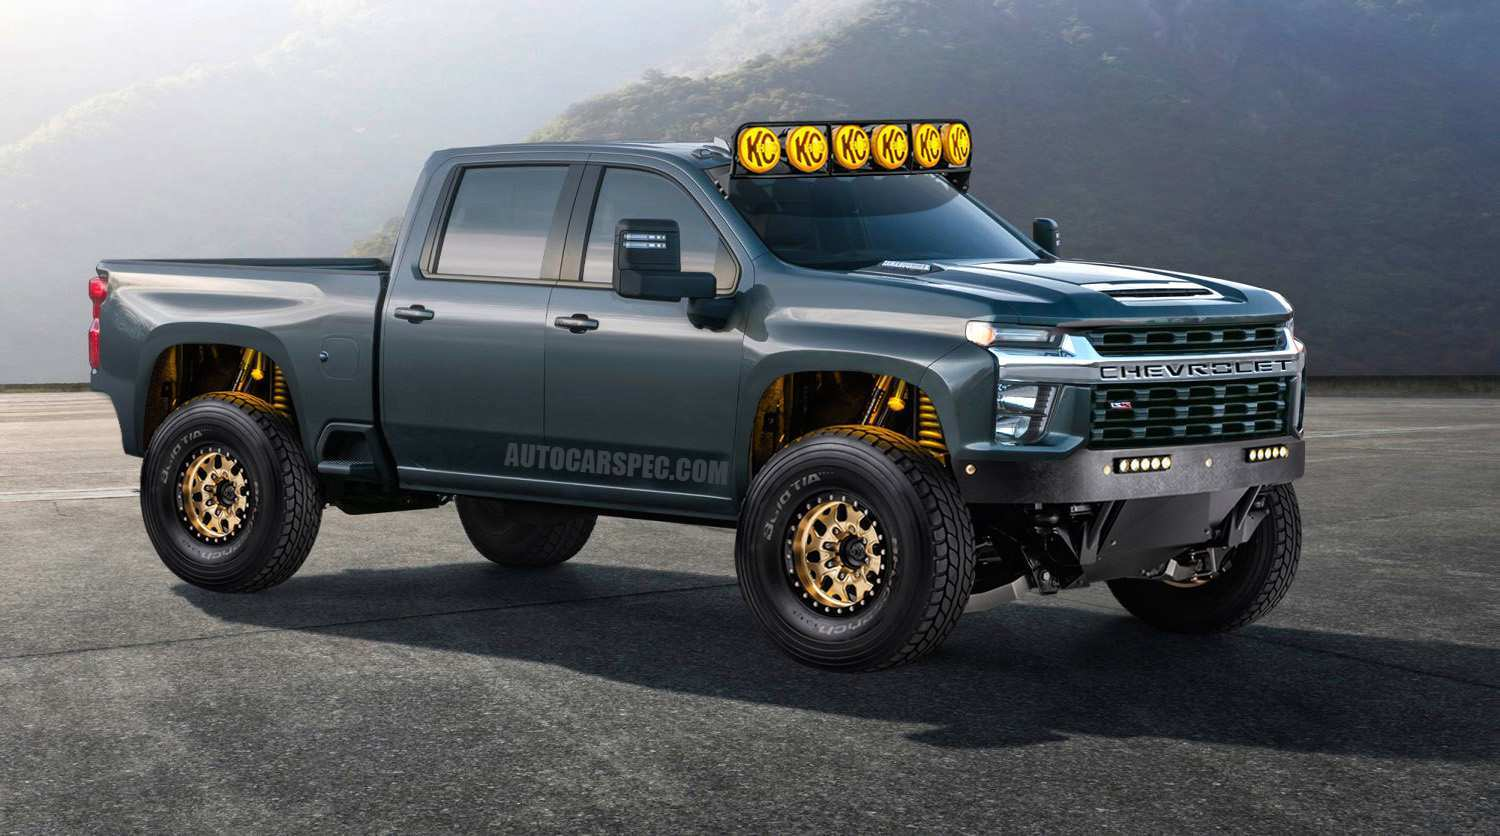 85 The Best Chevrolet Silverado 2020 Photoshop New Concept